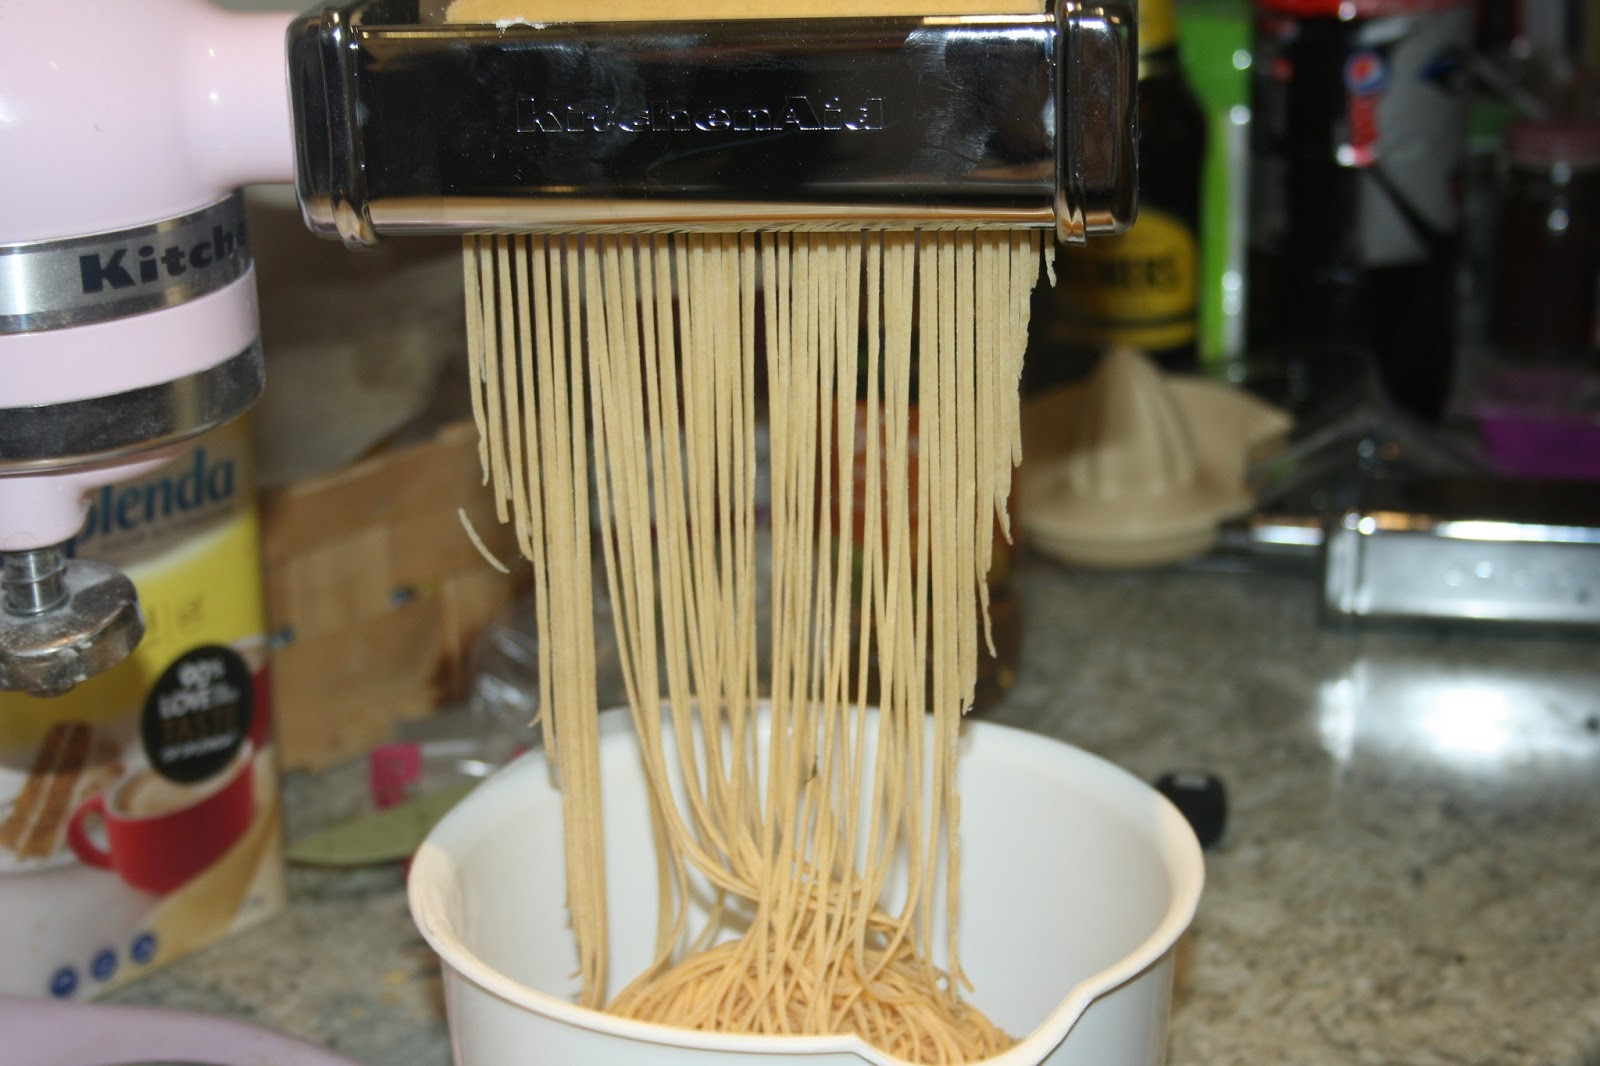 Homemade Pasta Kitchenaid  Caroline Makes Fresh Homemade Spaghetti with